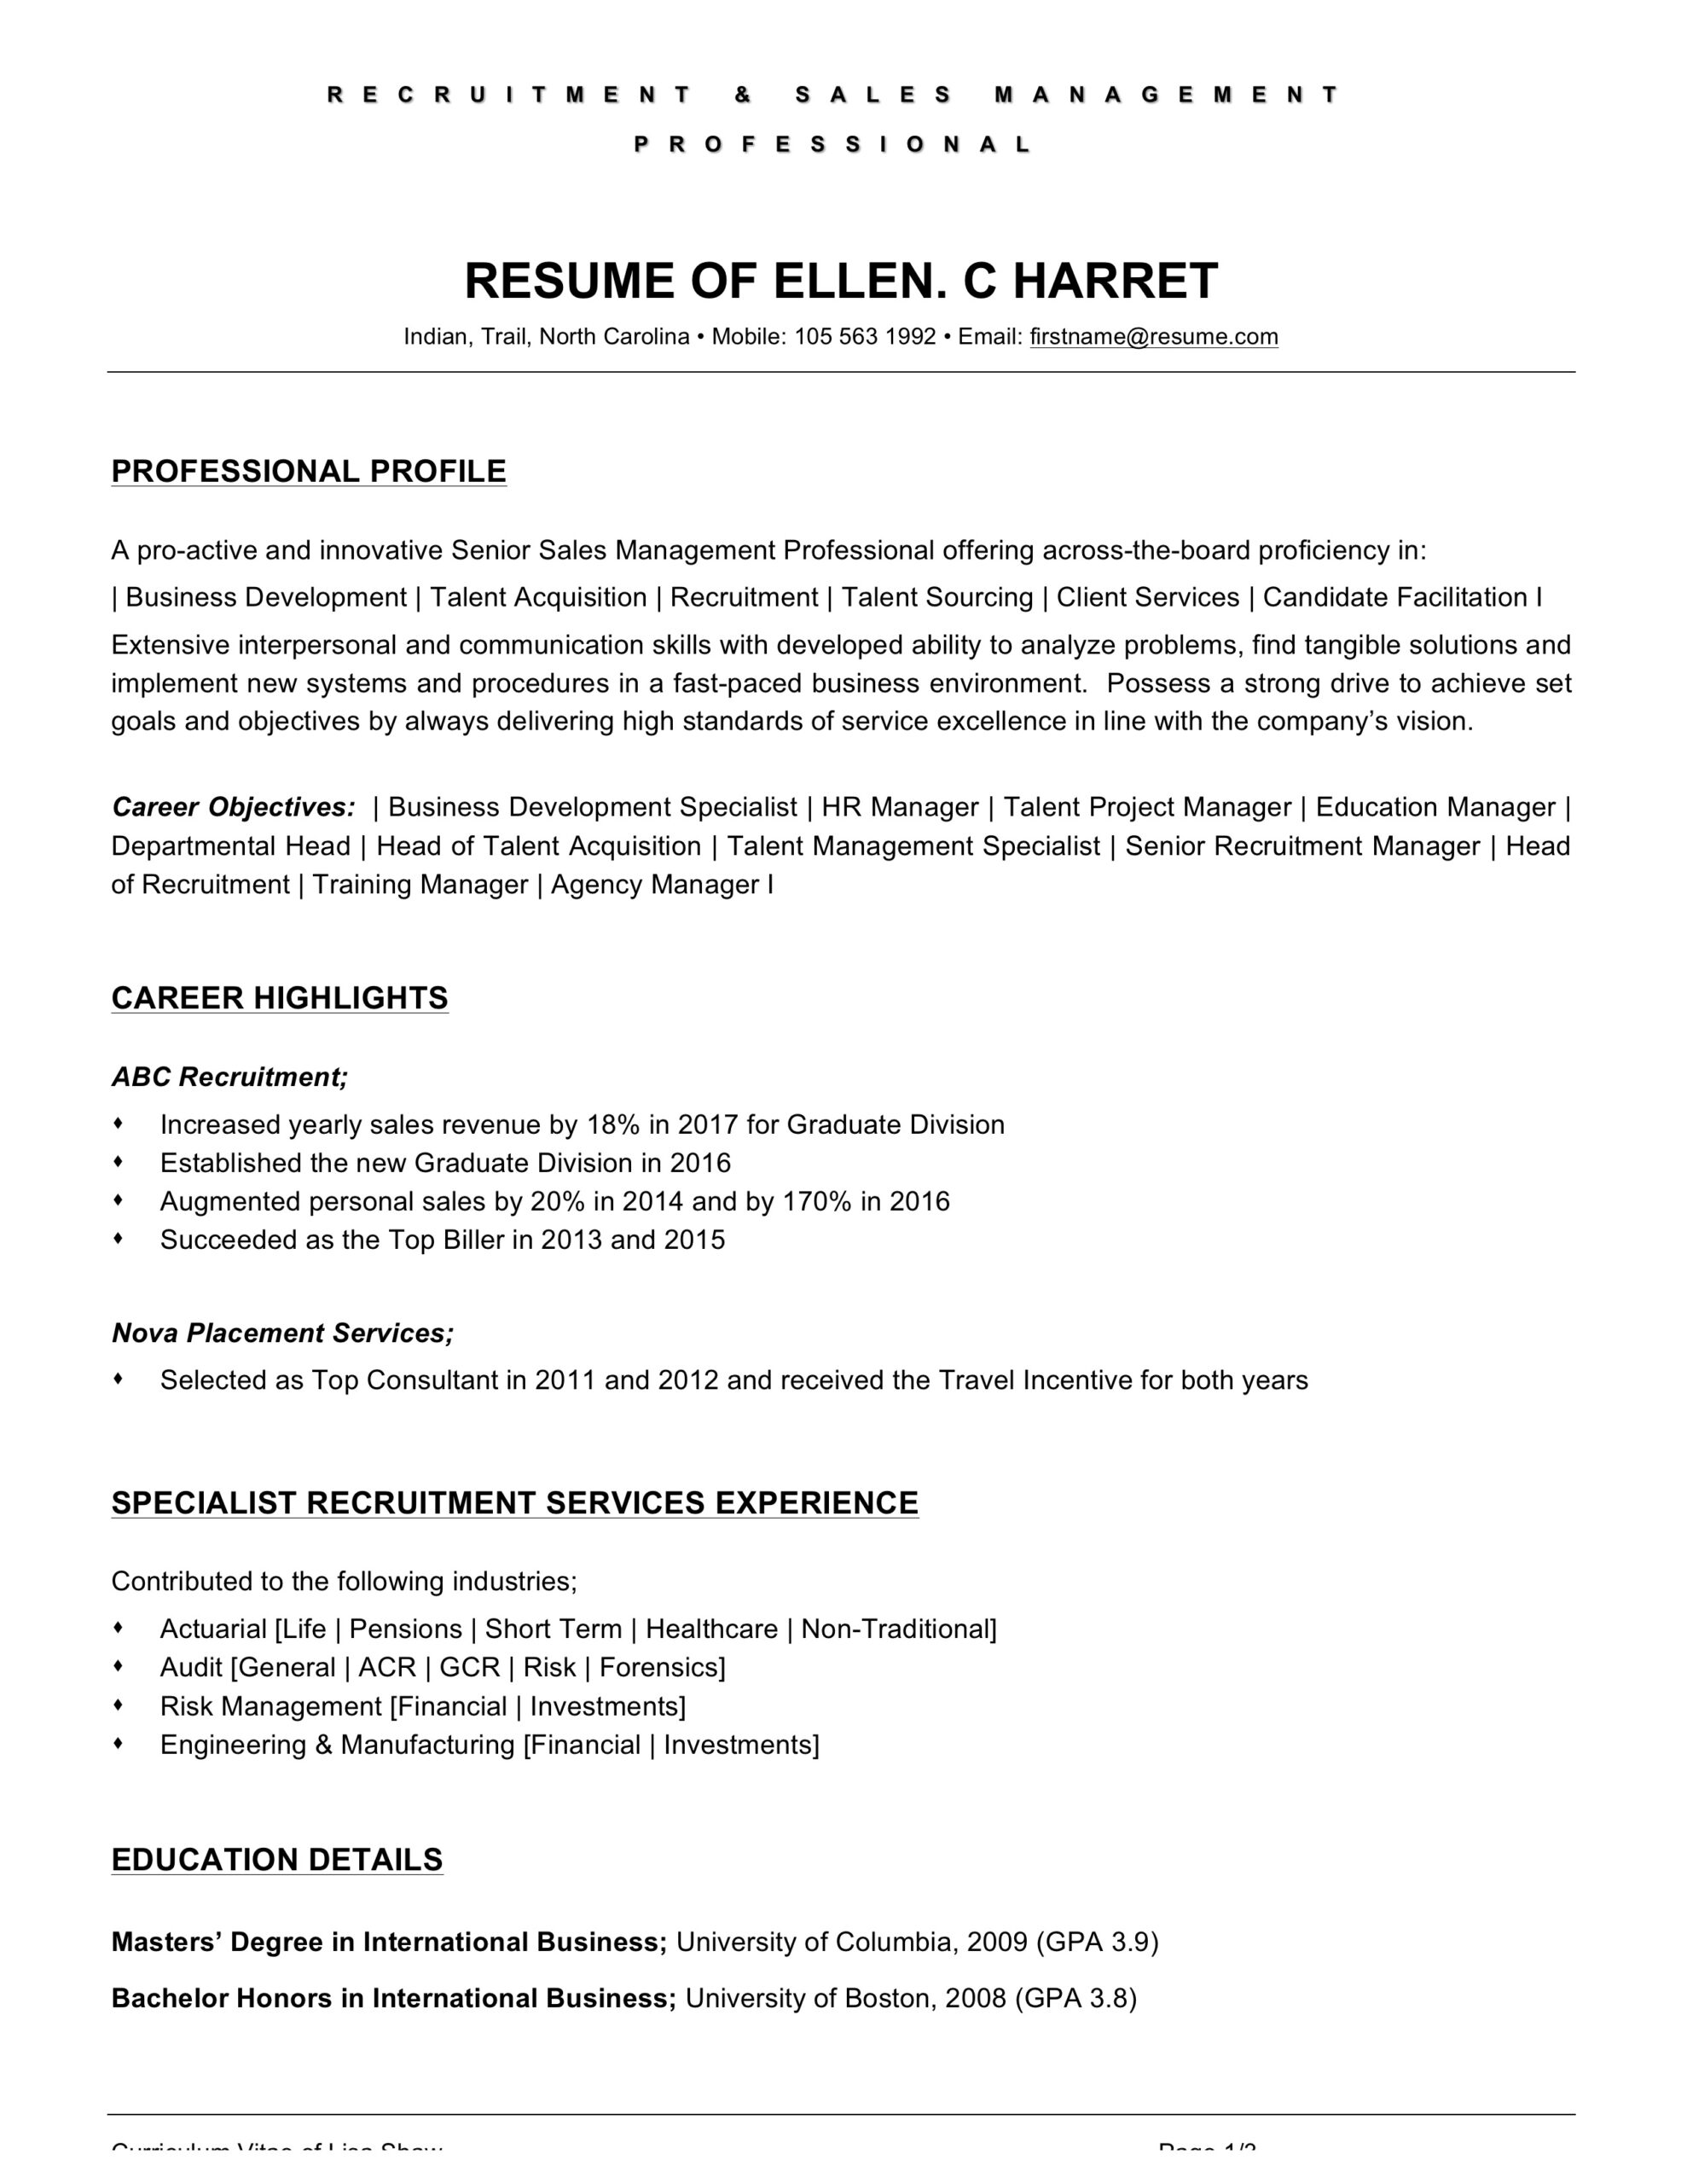 food and beverage attendant resume examples word pdf on the job training objectives Resume On The Job Training Objectives Resume